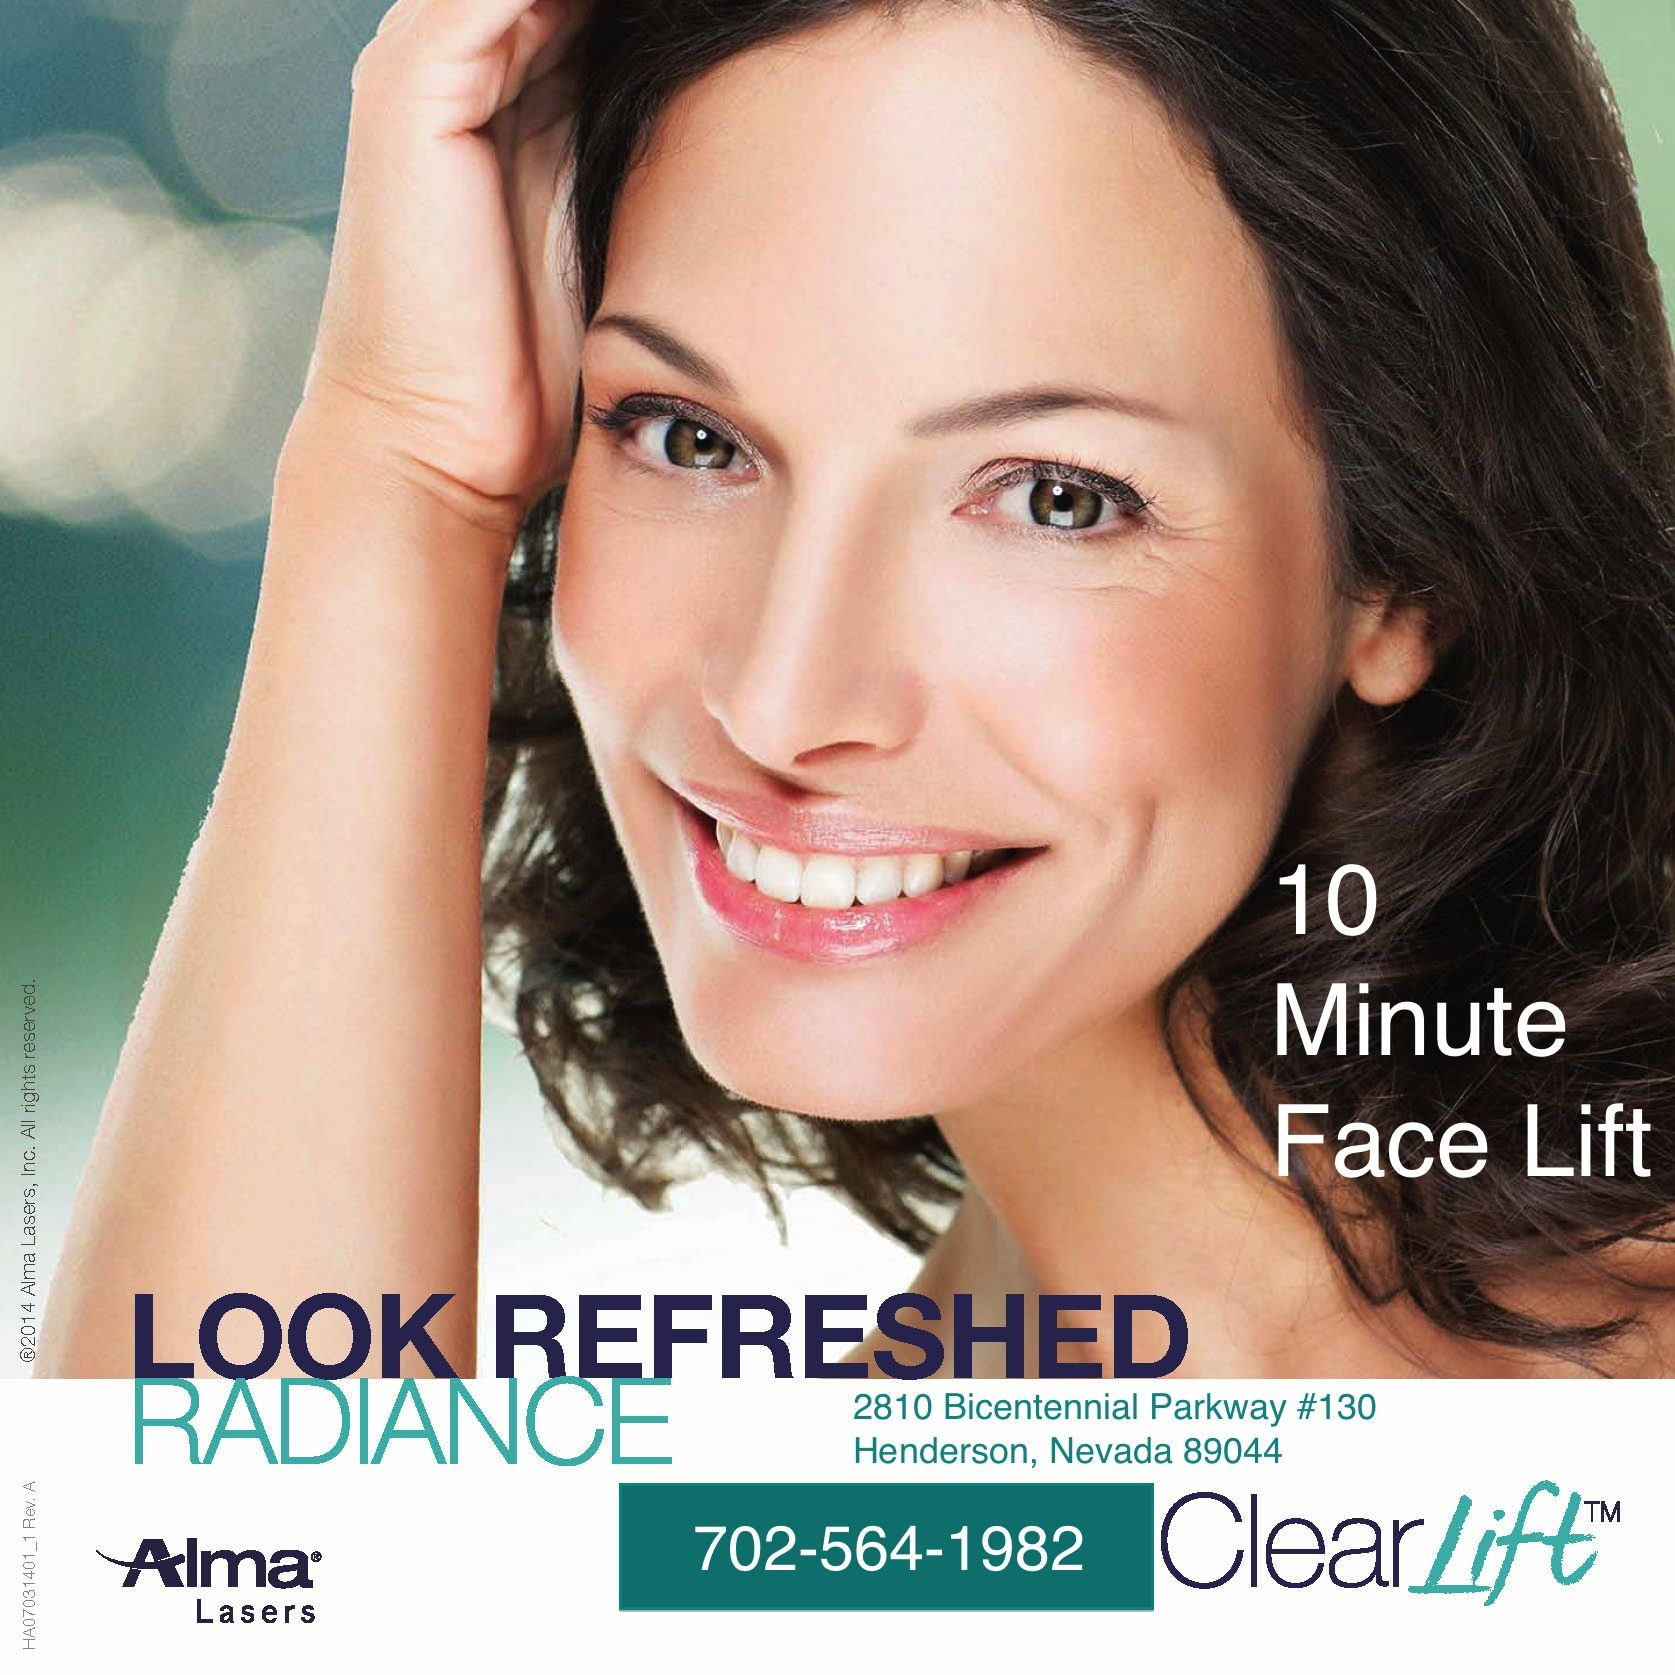 Secret Body Henderson has ClearLift for the holidays! We